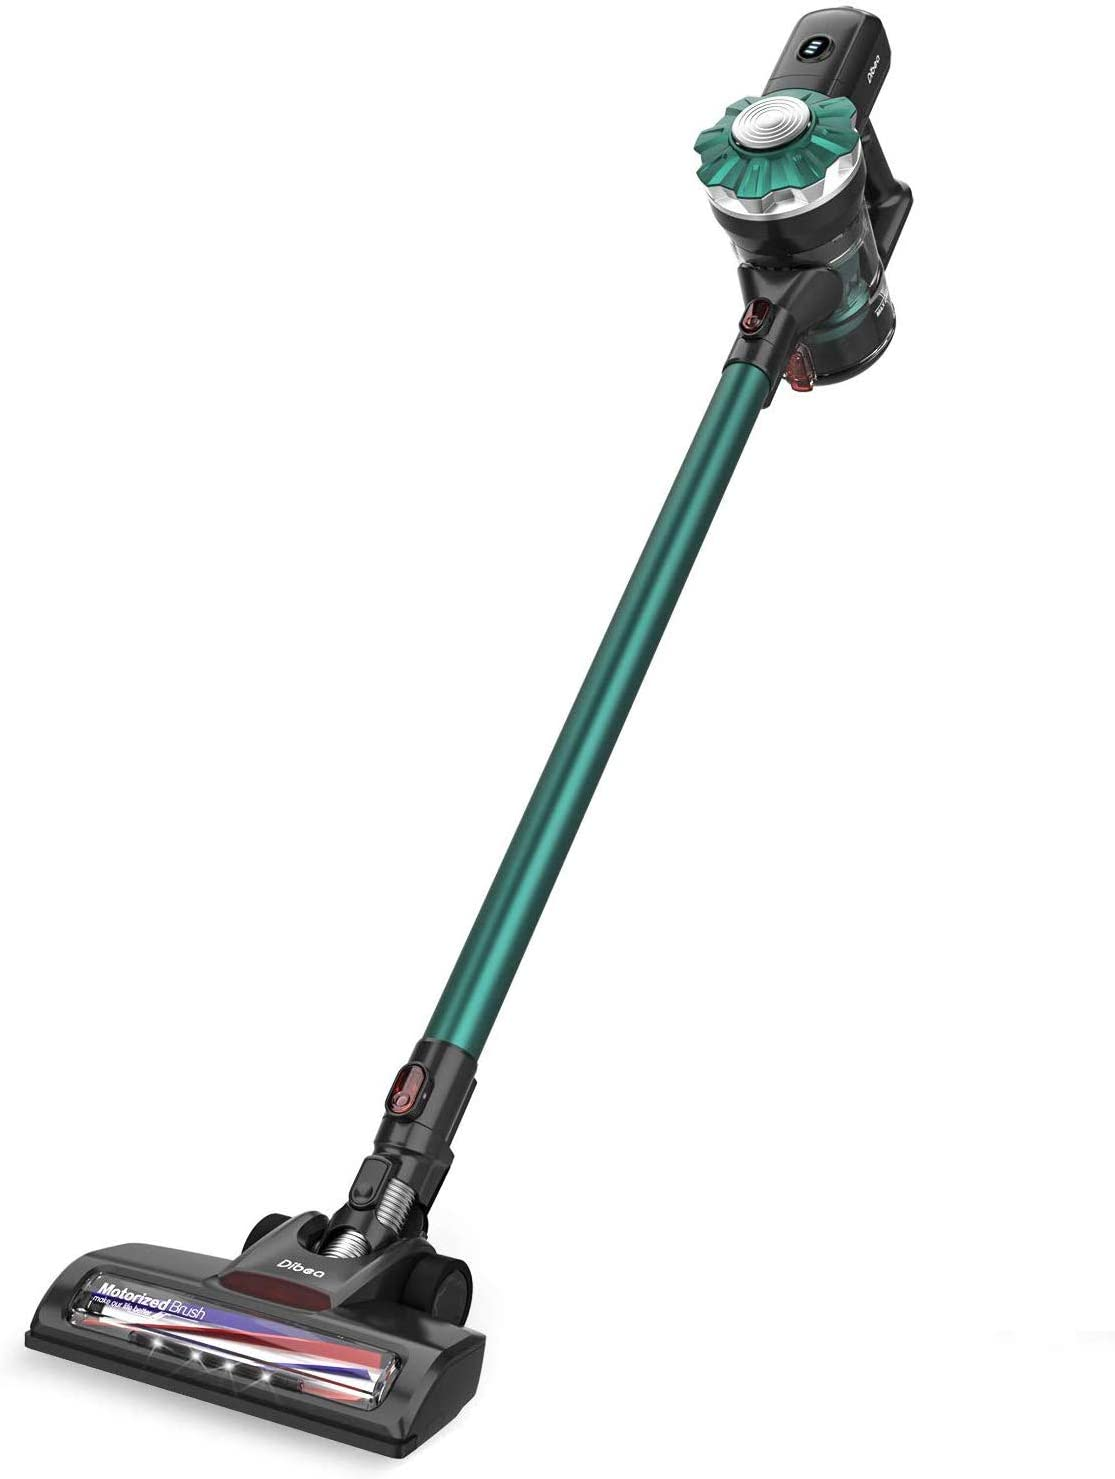 Dibea Cordless Vacuum Cleaner, 12KPa Powerful Suction Lightweight 2-in-1 Stick Handheld Vacuum with Rechargeable Lithium Ion Battery Perfect for Hardwood Floor,Carpet,Pet Hairs